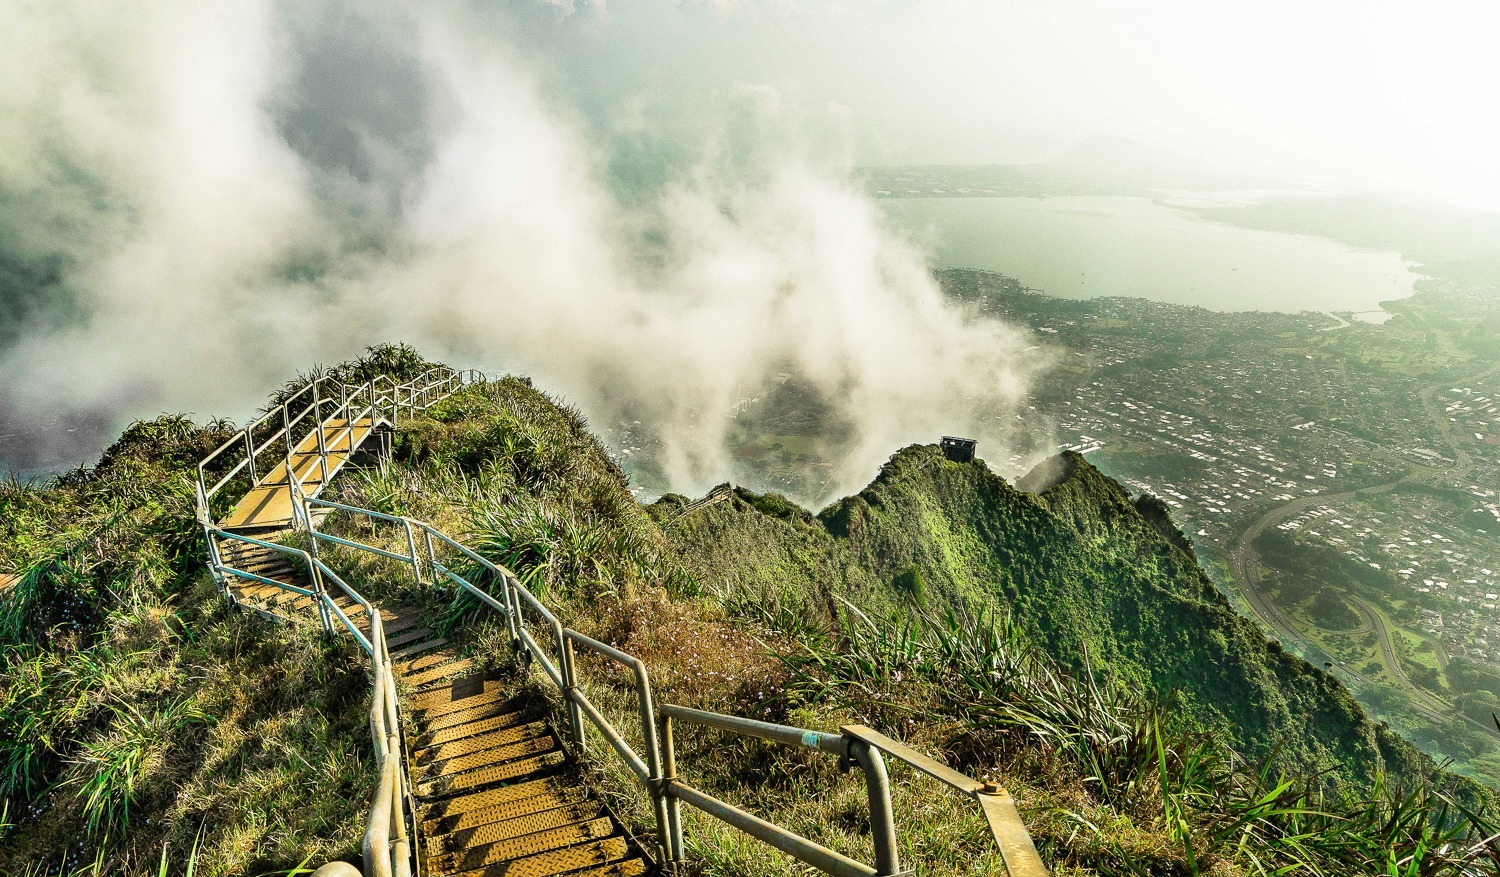 Breathtaking shot of The Stairway to Heaven hike